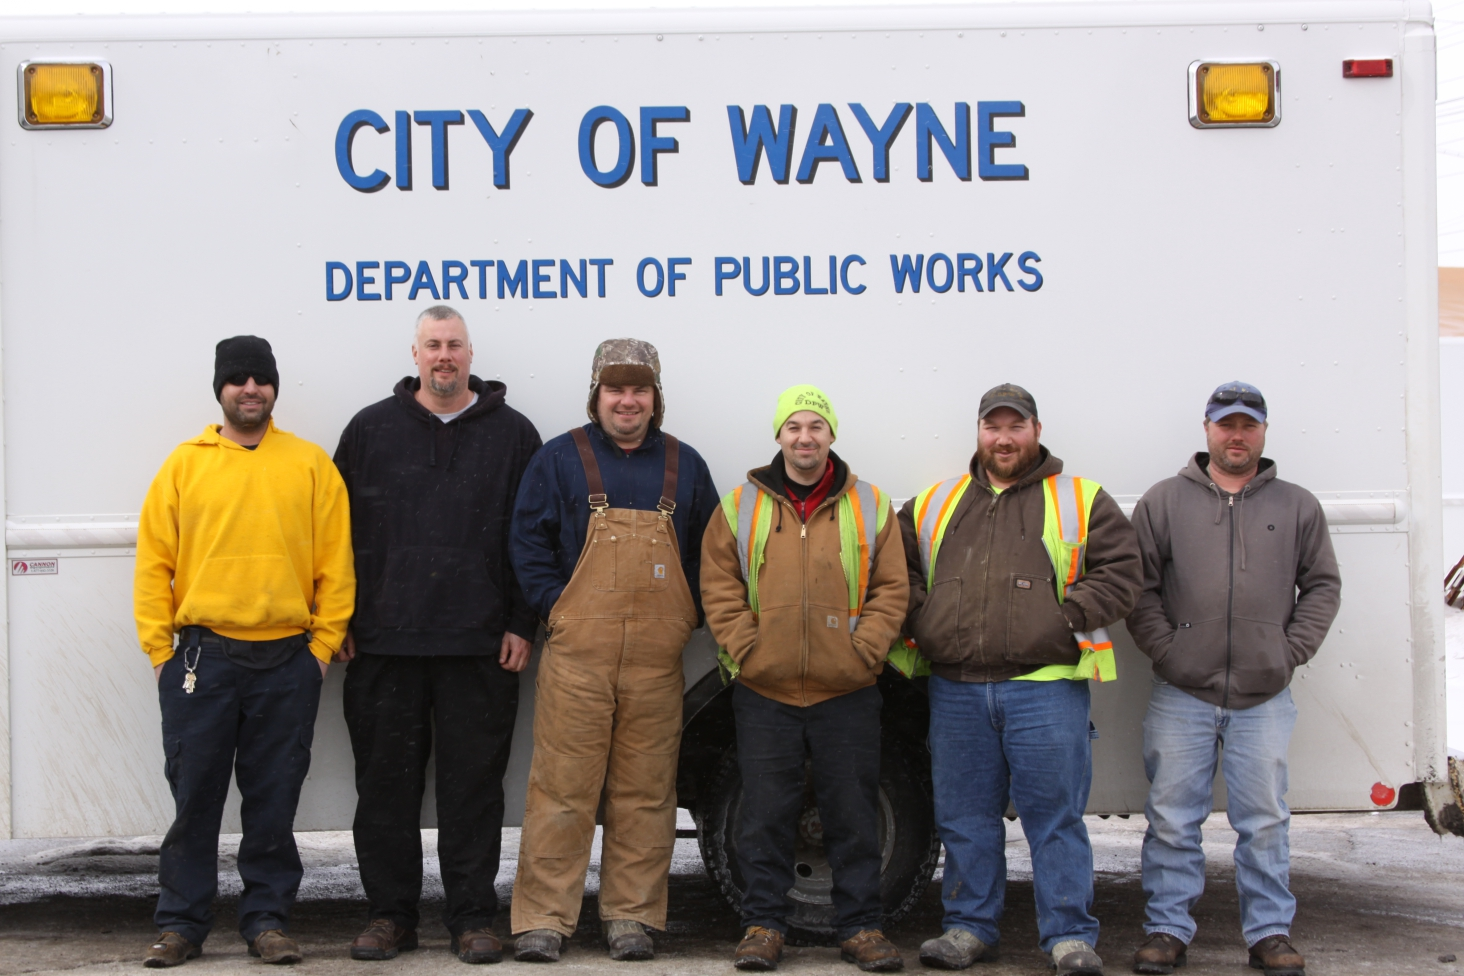 Unsung hereos of Wayne's Department of Public Works Mike Britton,  Mike Schuell, Chuck Hannah, Steve Curley, Brian Smith and Craig Krzeninski. Photo by John P. Rhaesa